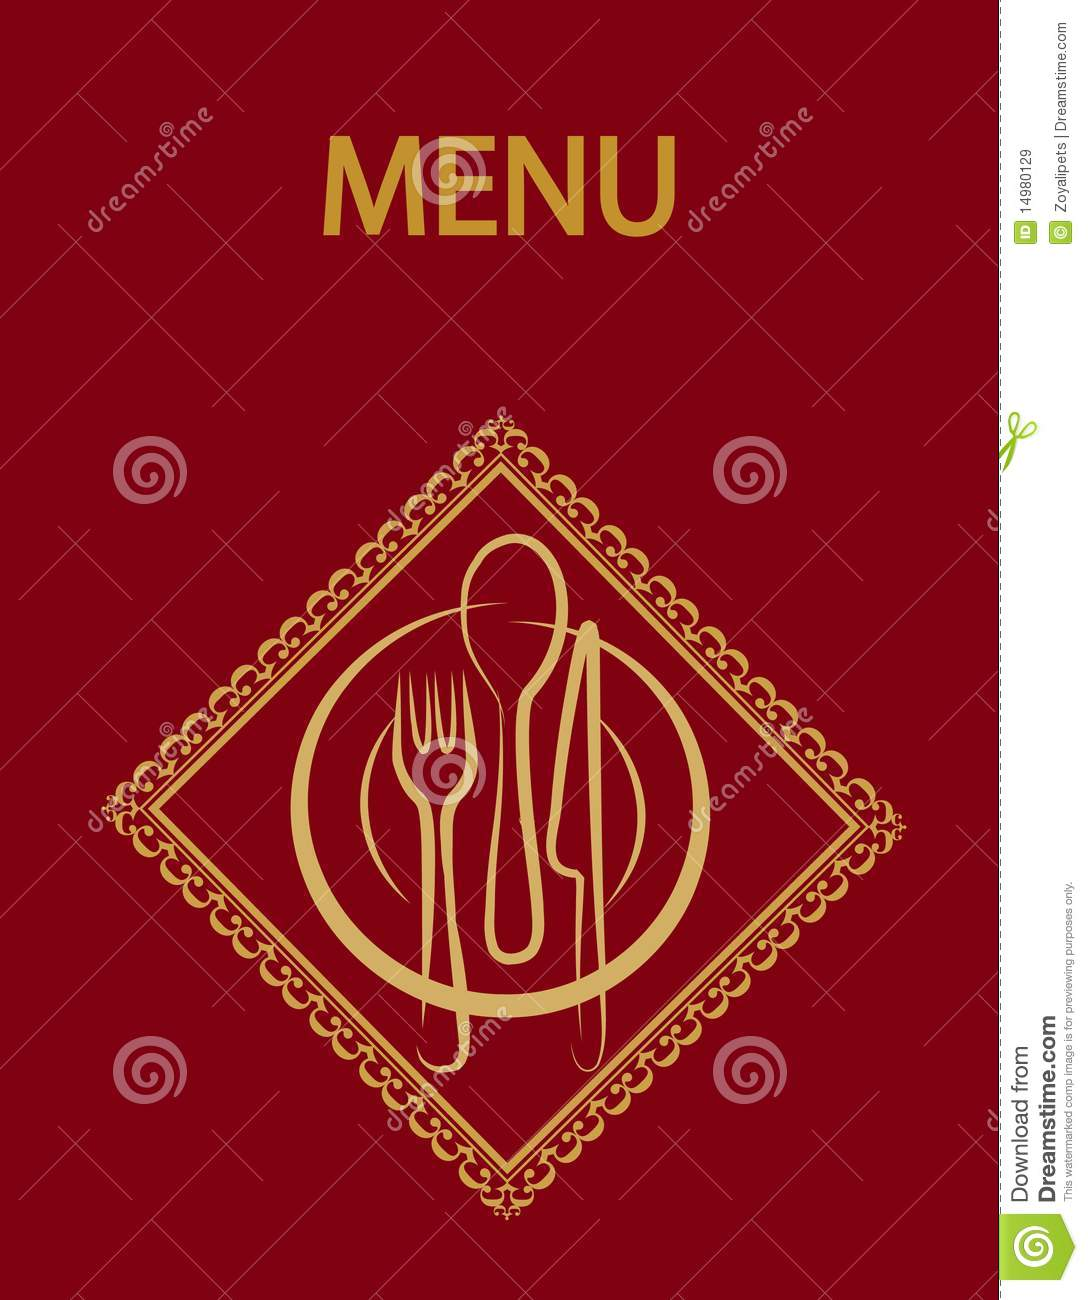 Restaurant Menu Design With Red Background-2 Royalty Free Stock Images ...